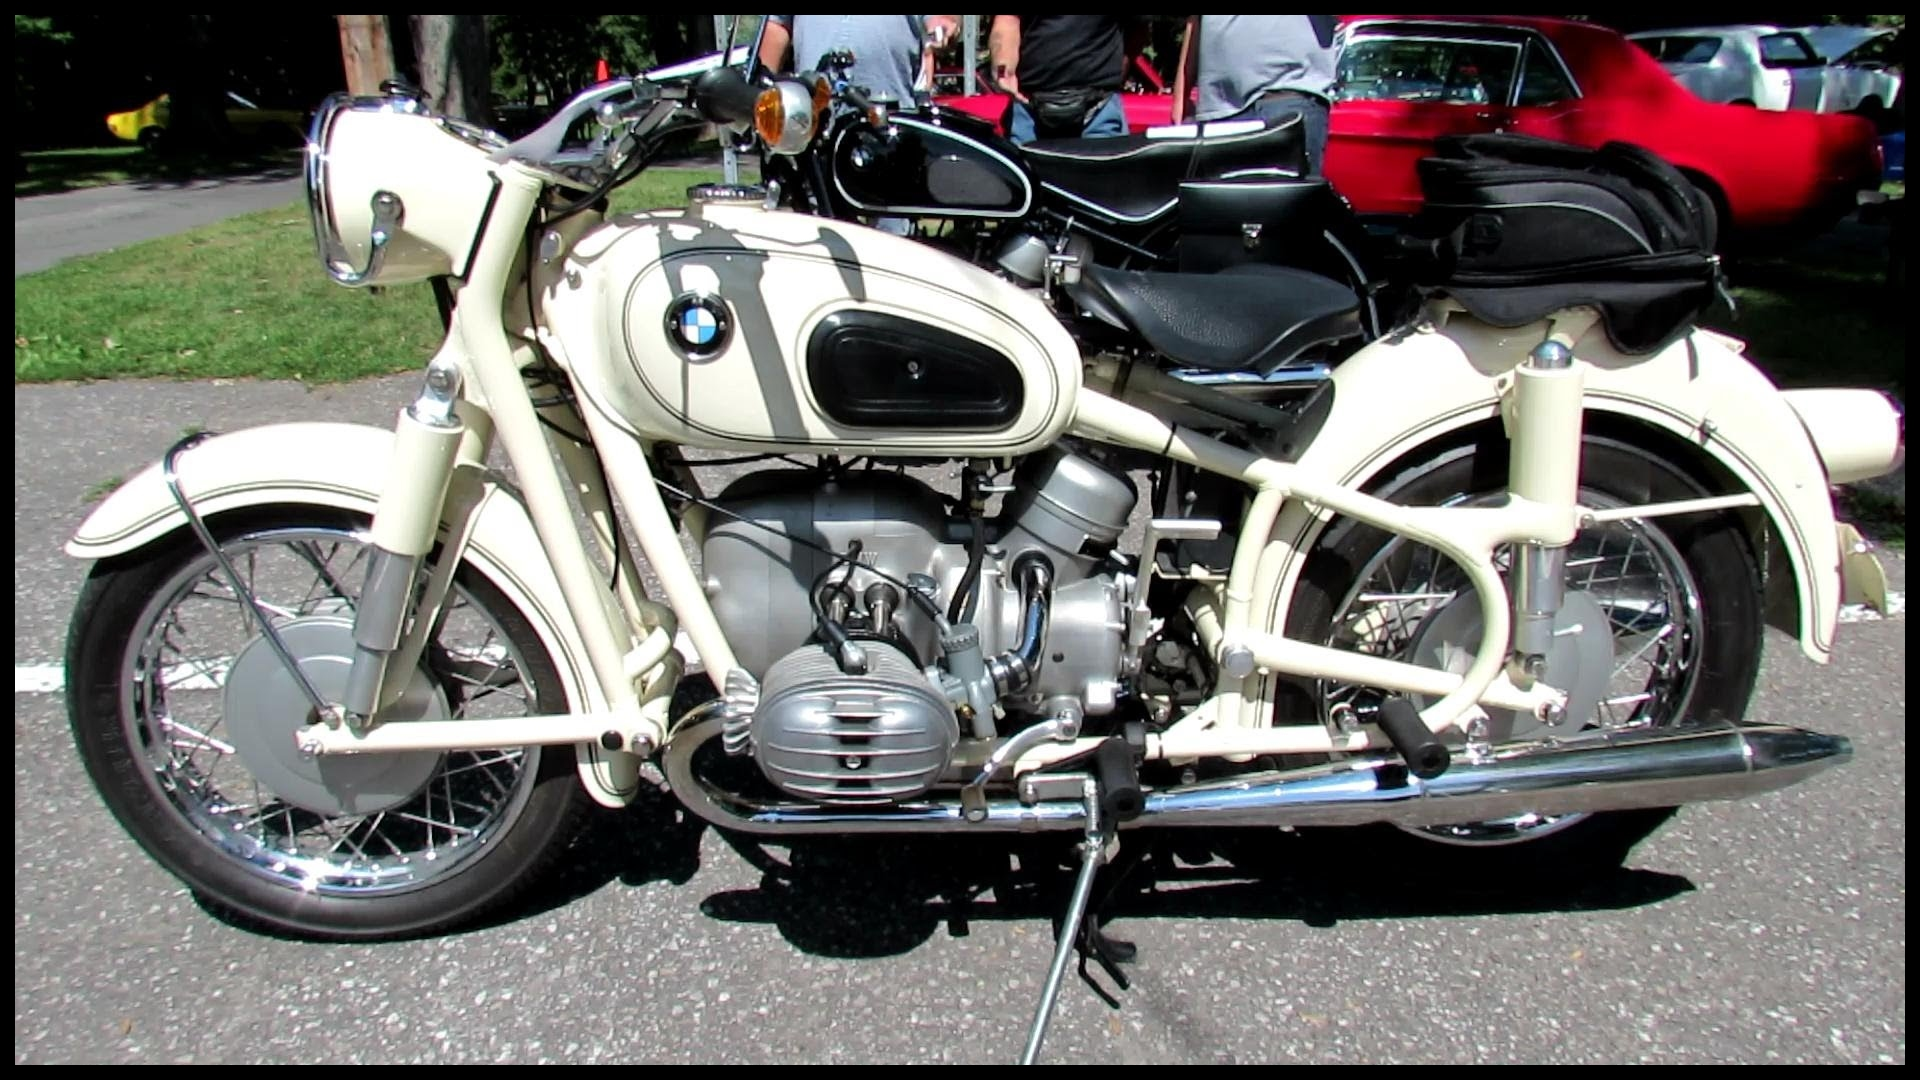 1965 BMW R60 2 Motorcycle 2012 Beaconsfield Montreal Quebec Classic Car Exposition VAQ